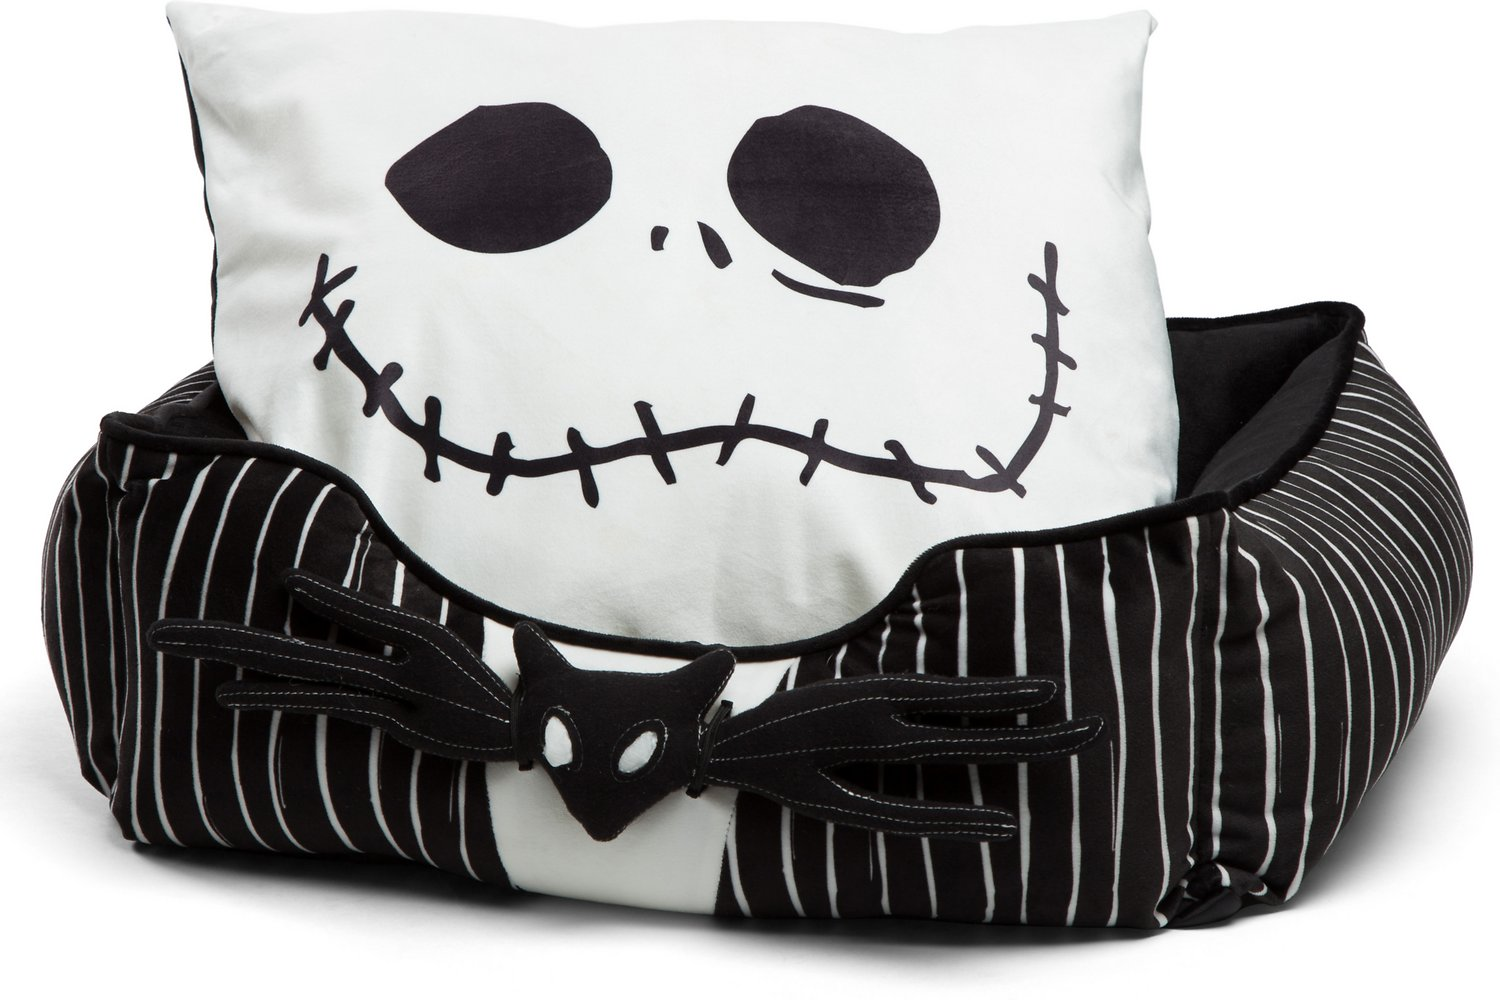 Fabulous Disney Nightmare Before Christmas Jack Stripe Corded Unemploymentrelief Wooden Chair Designs For Living Room Unemploymentrelieforg